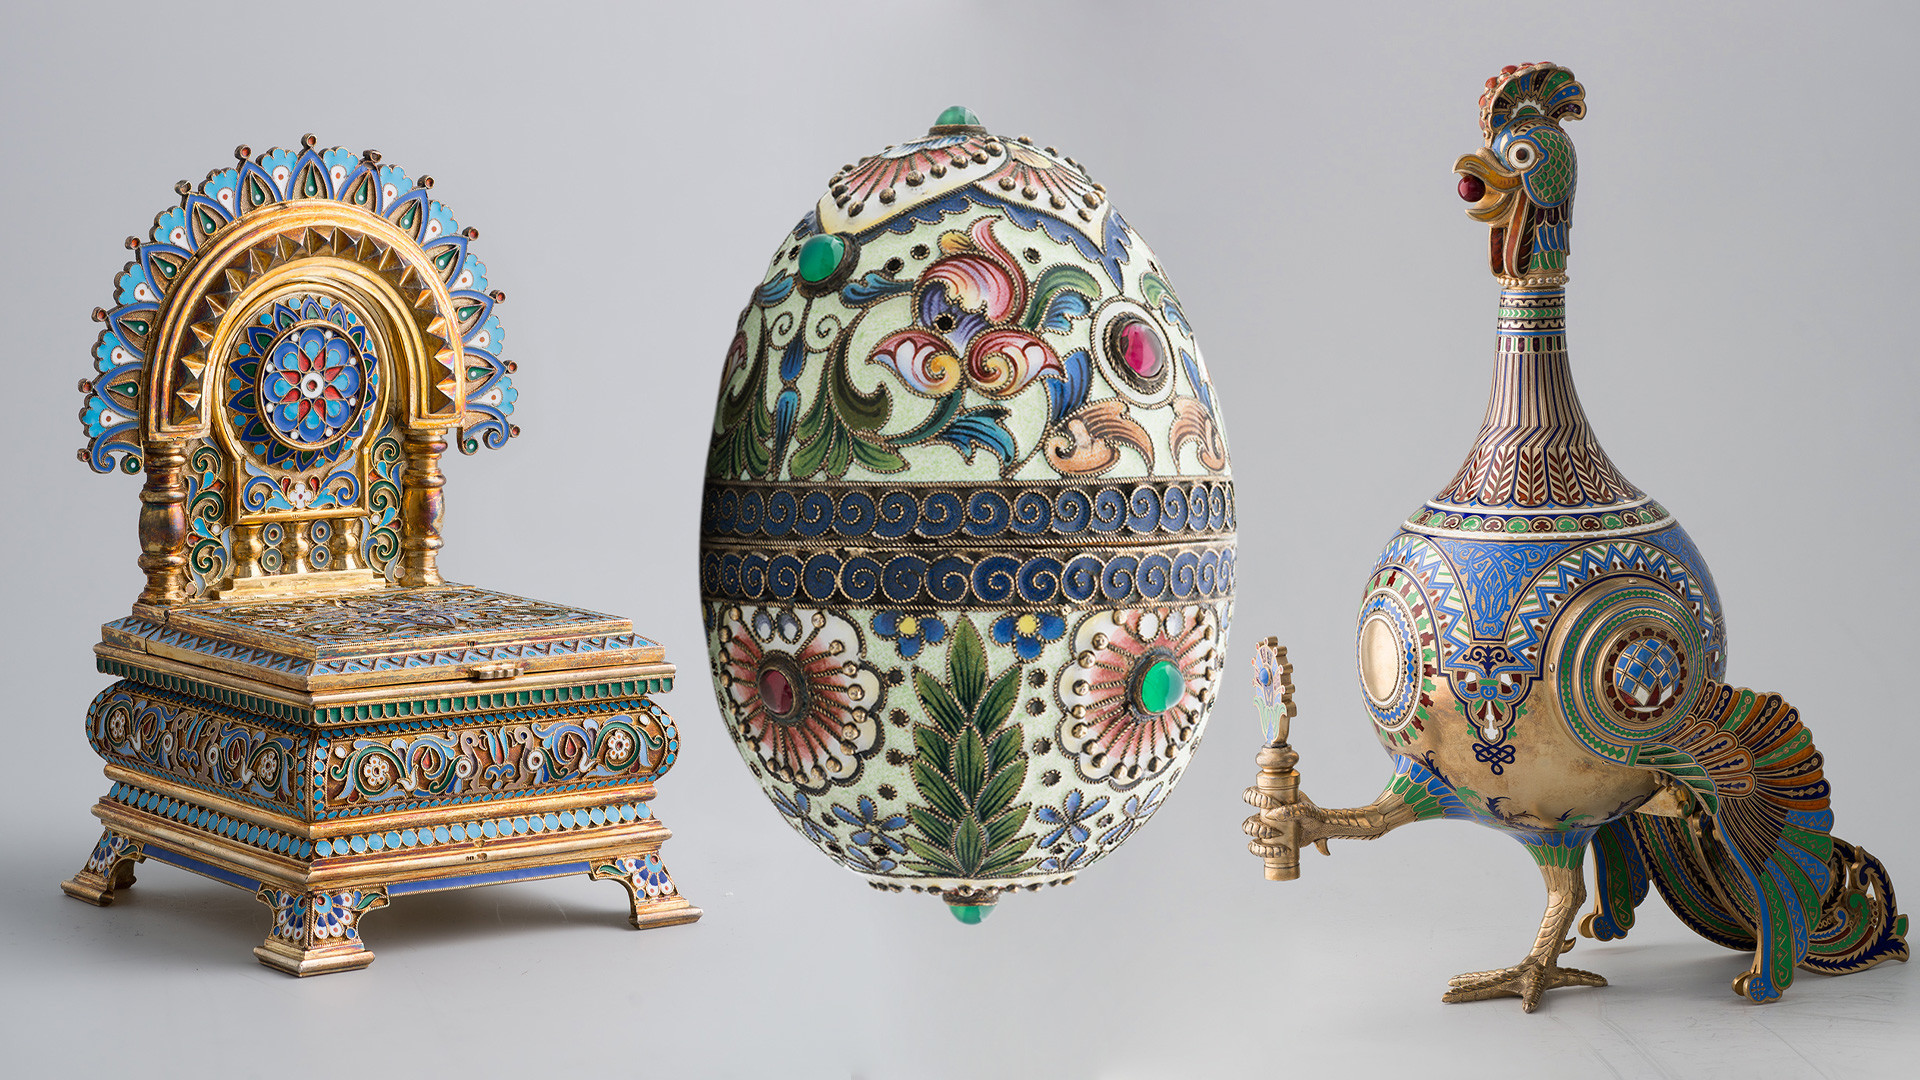 L-R:. Salt shaker. The House of Fabergé; Easter egg. Rückert's firm; Cockerel' carafe. I.P. Khlebnikov's firm